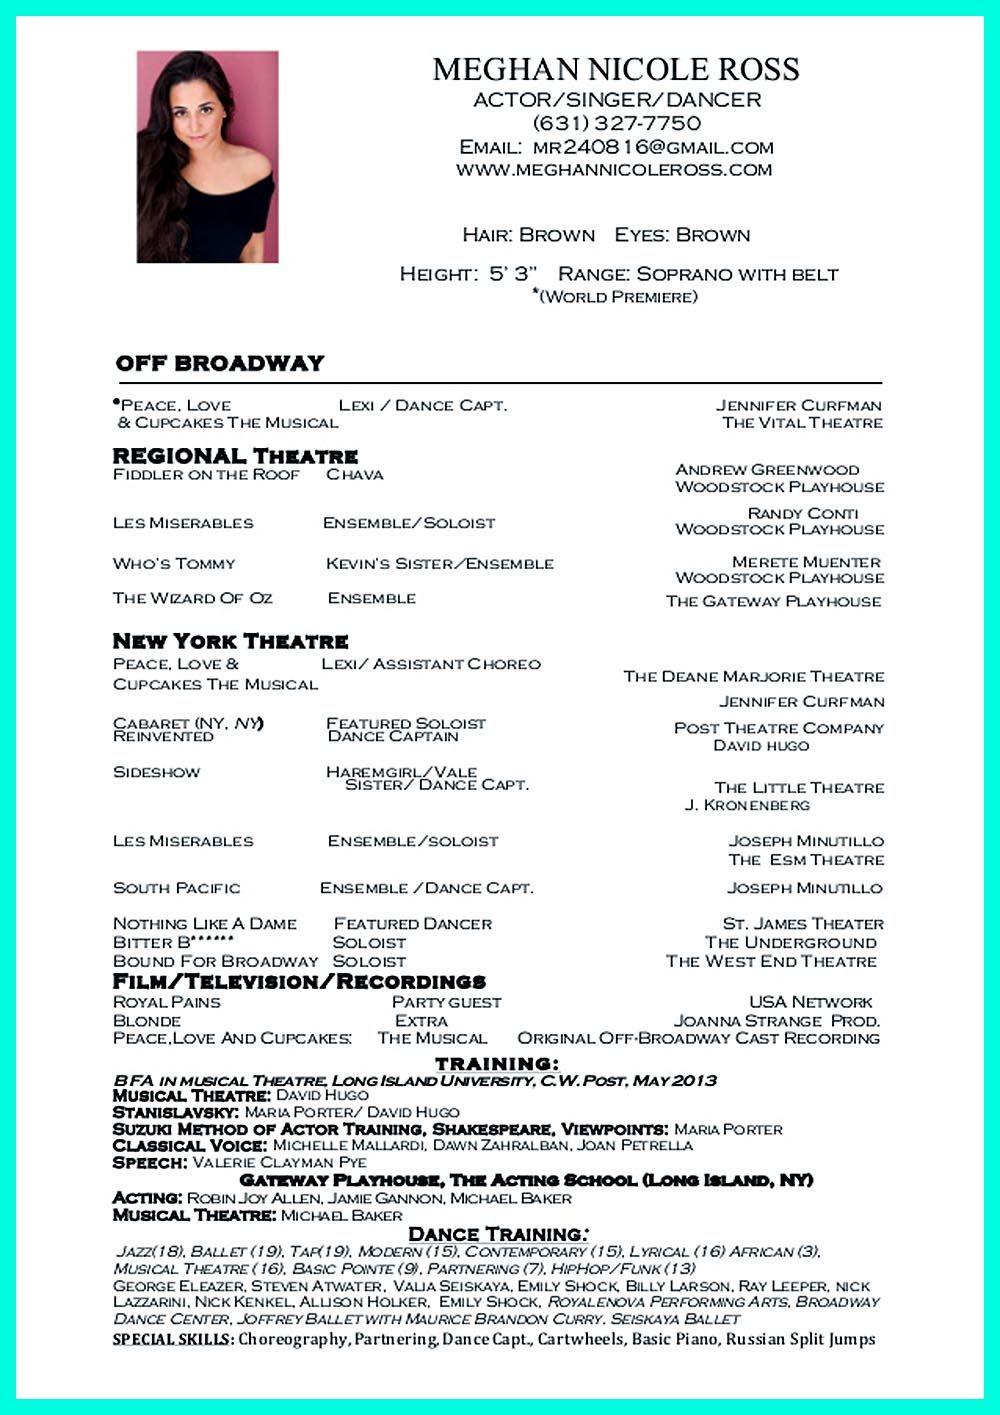 dance resume can be used for both novice and professional dancer dance resume can be used for both novice and professional dancer most job of dancer